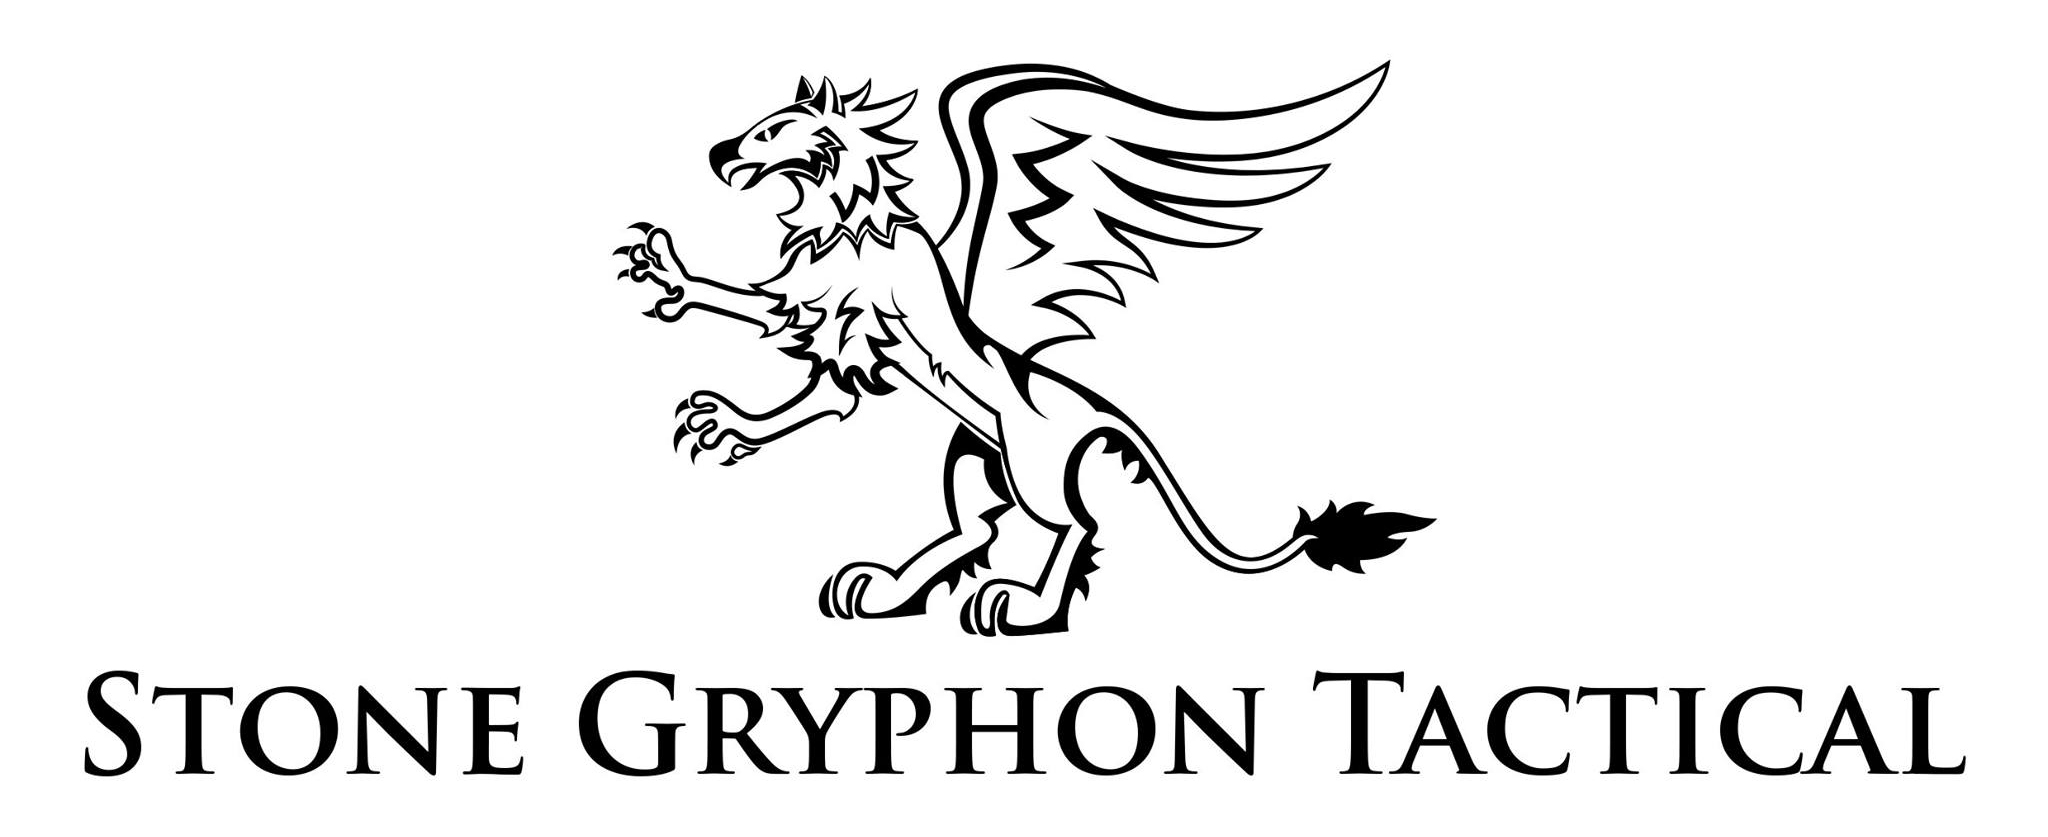 Stone Gryphon Tactical Logo